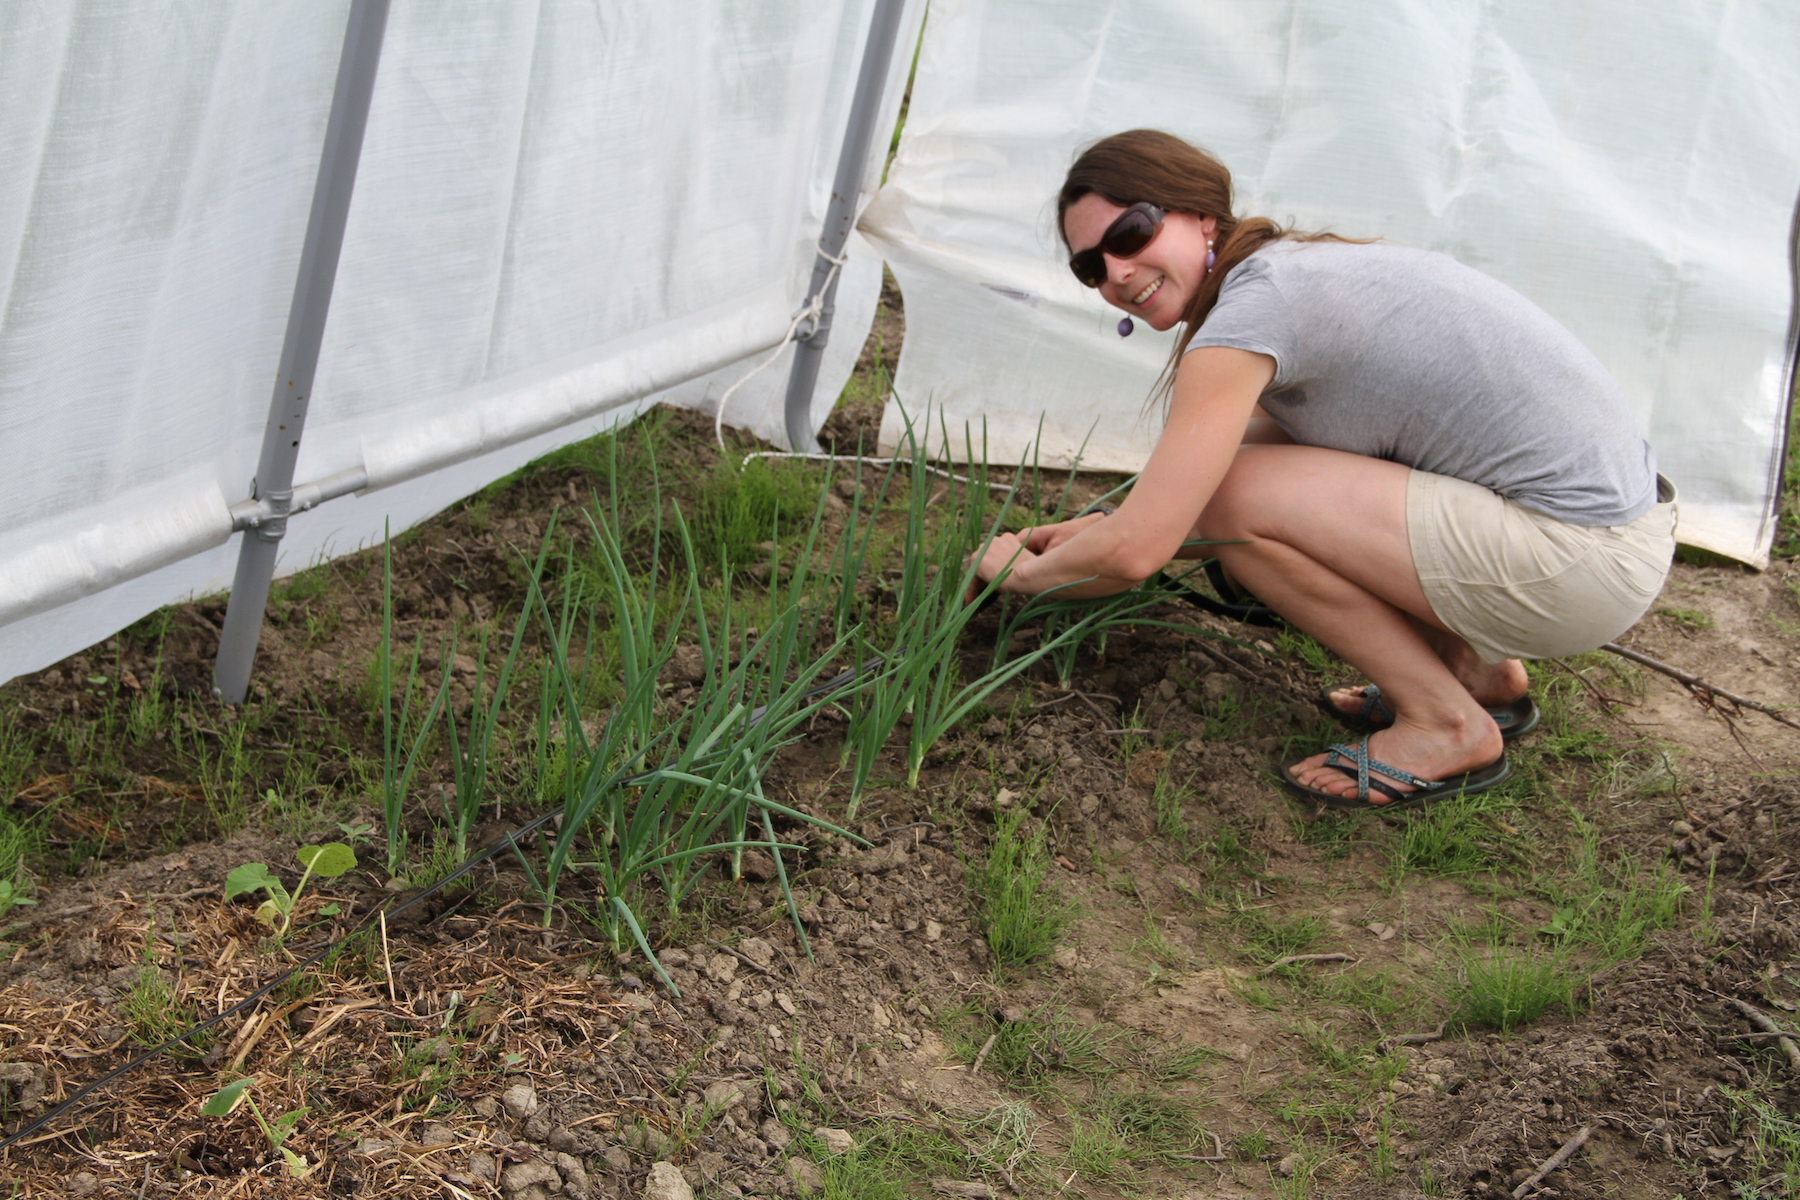 Heidi Rader in a grey shirt setting up a drip-irrigation system in her hoop house.